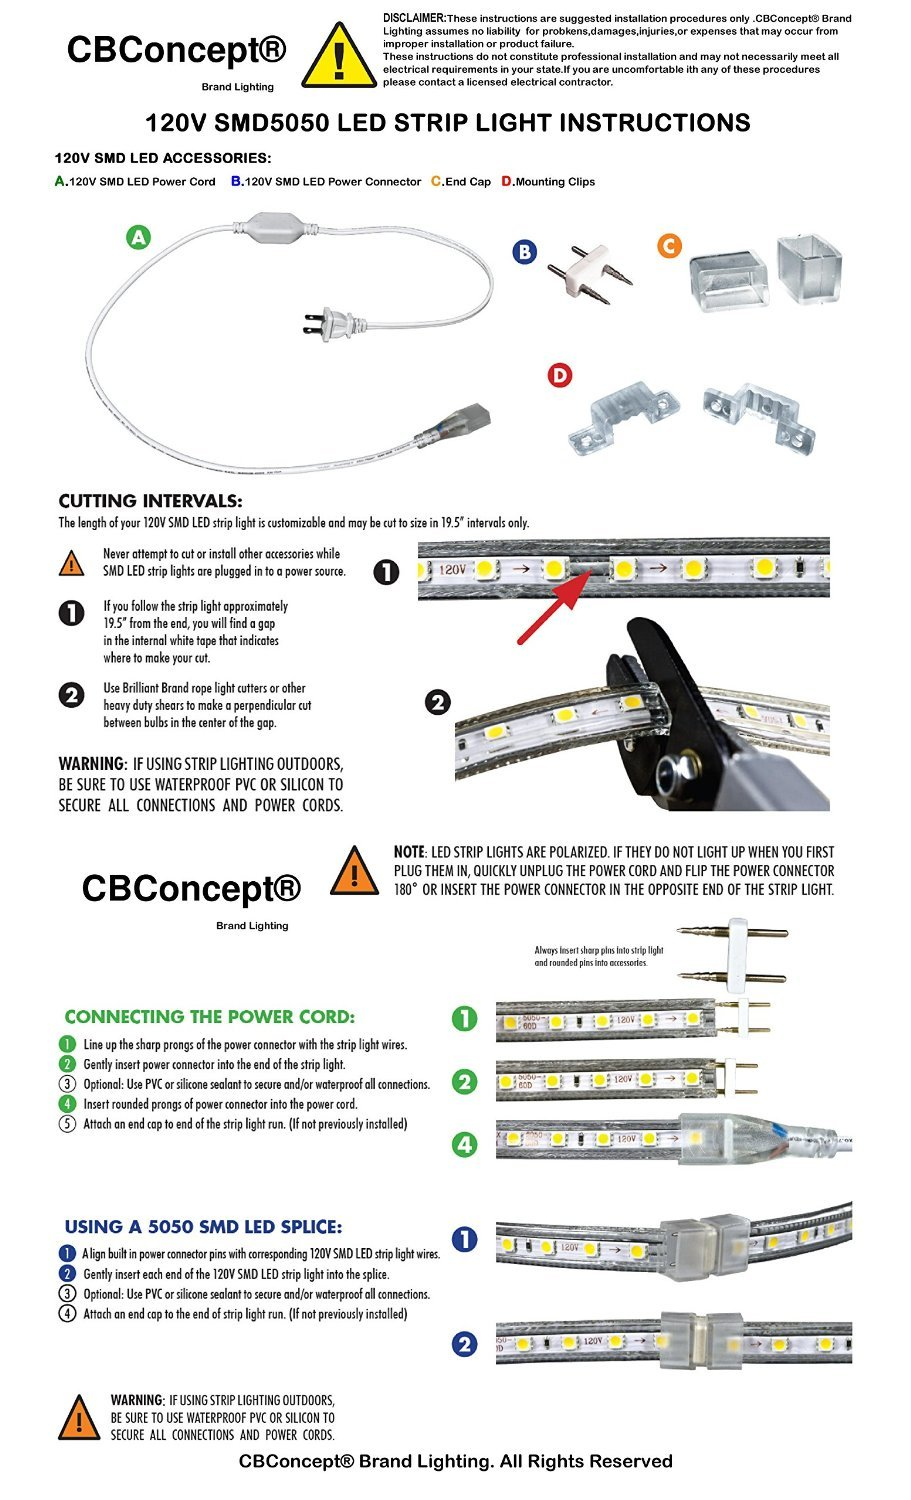 CBconcept UL Listed, 6.6 Feet, 720 Lumen, 3000K Warm White, Dimmable, 110-120V AC Flexible Flat LED Strip Rope Light, 120 Units 3528 SMD LEDs, Indoor/Outdoor Use, Accessories Included, [Ready to use] by CBconcept (Image #5)